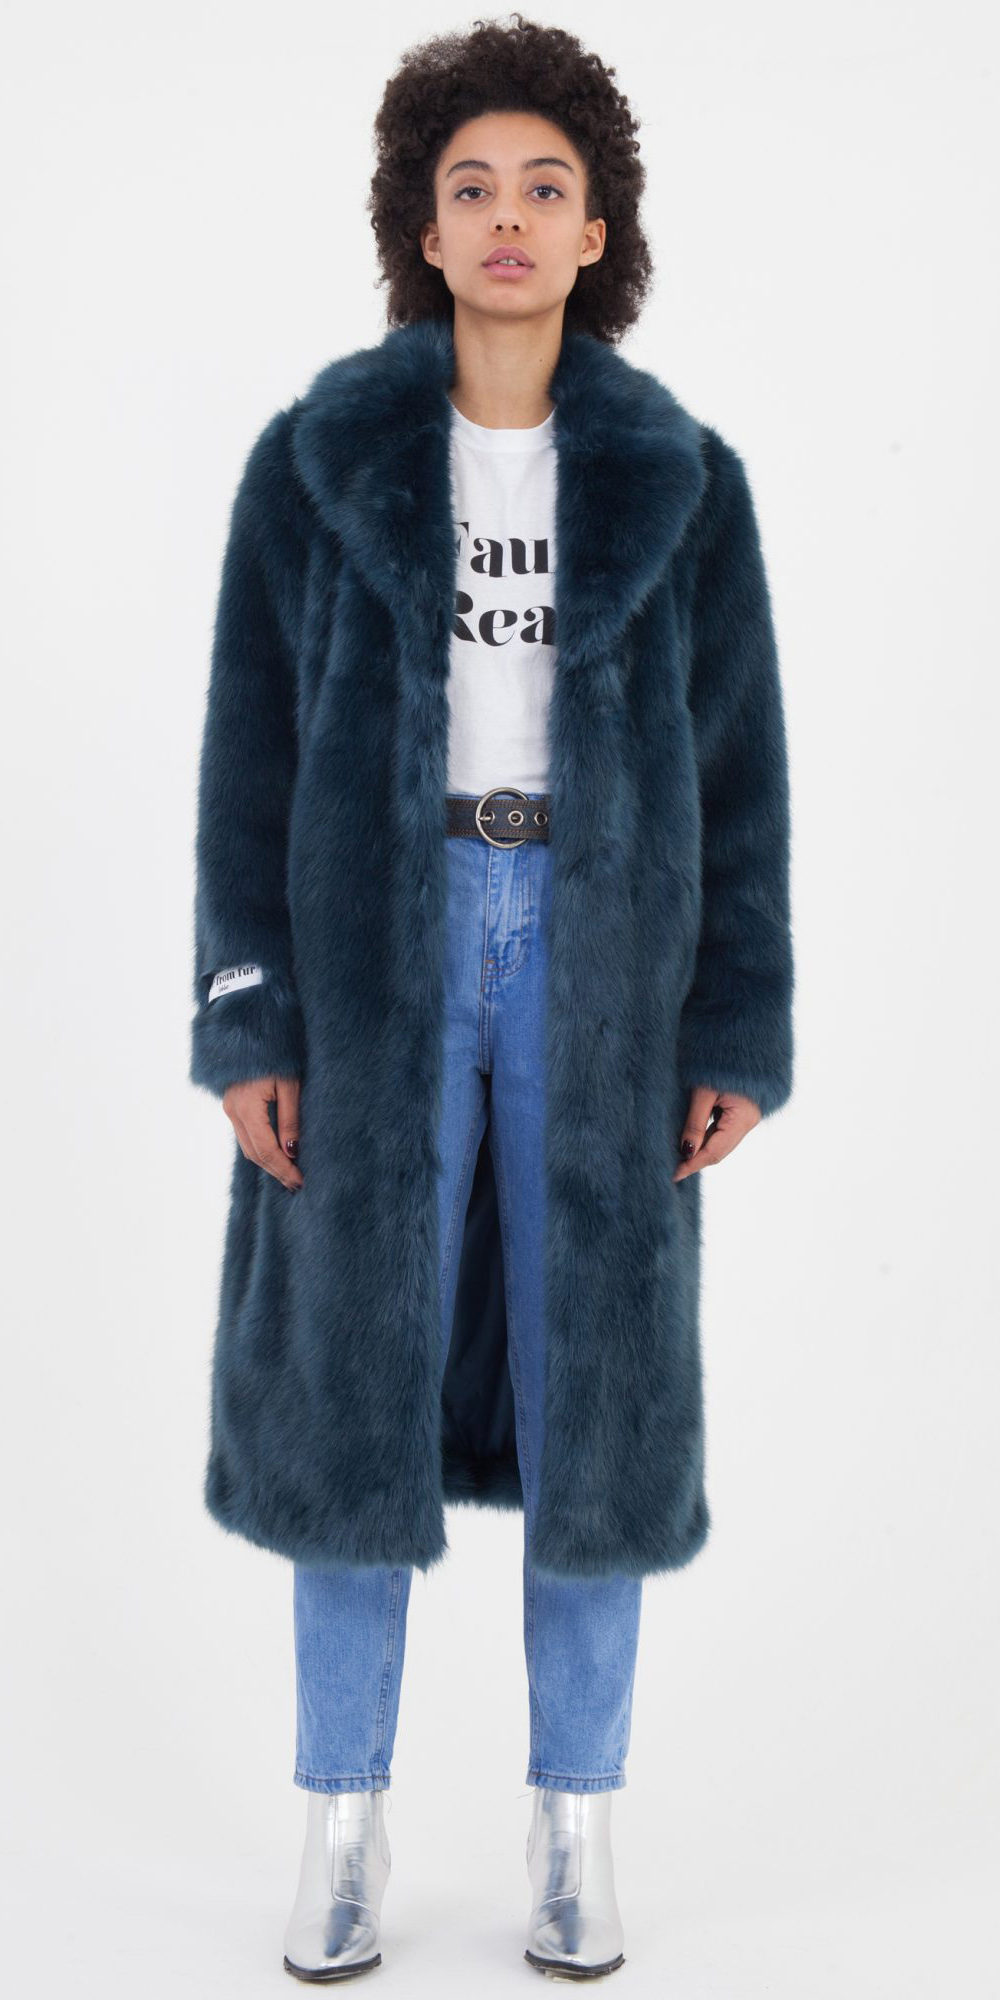 blue-med-skinny-jeans-white-graphic-tee-belt-gray-shoe-booties-silver-blue-navy-jacket-coat-fur-fuzz-fall-winter-brun-weekend.jpg